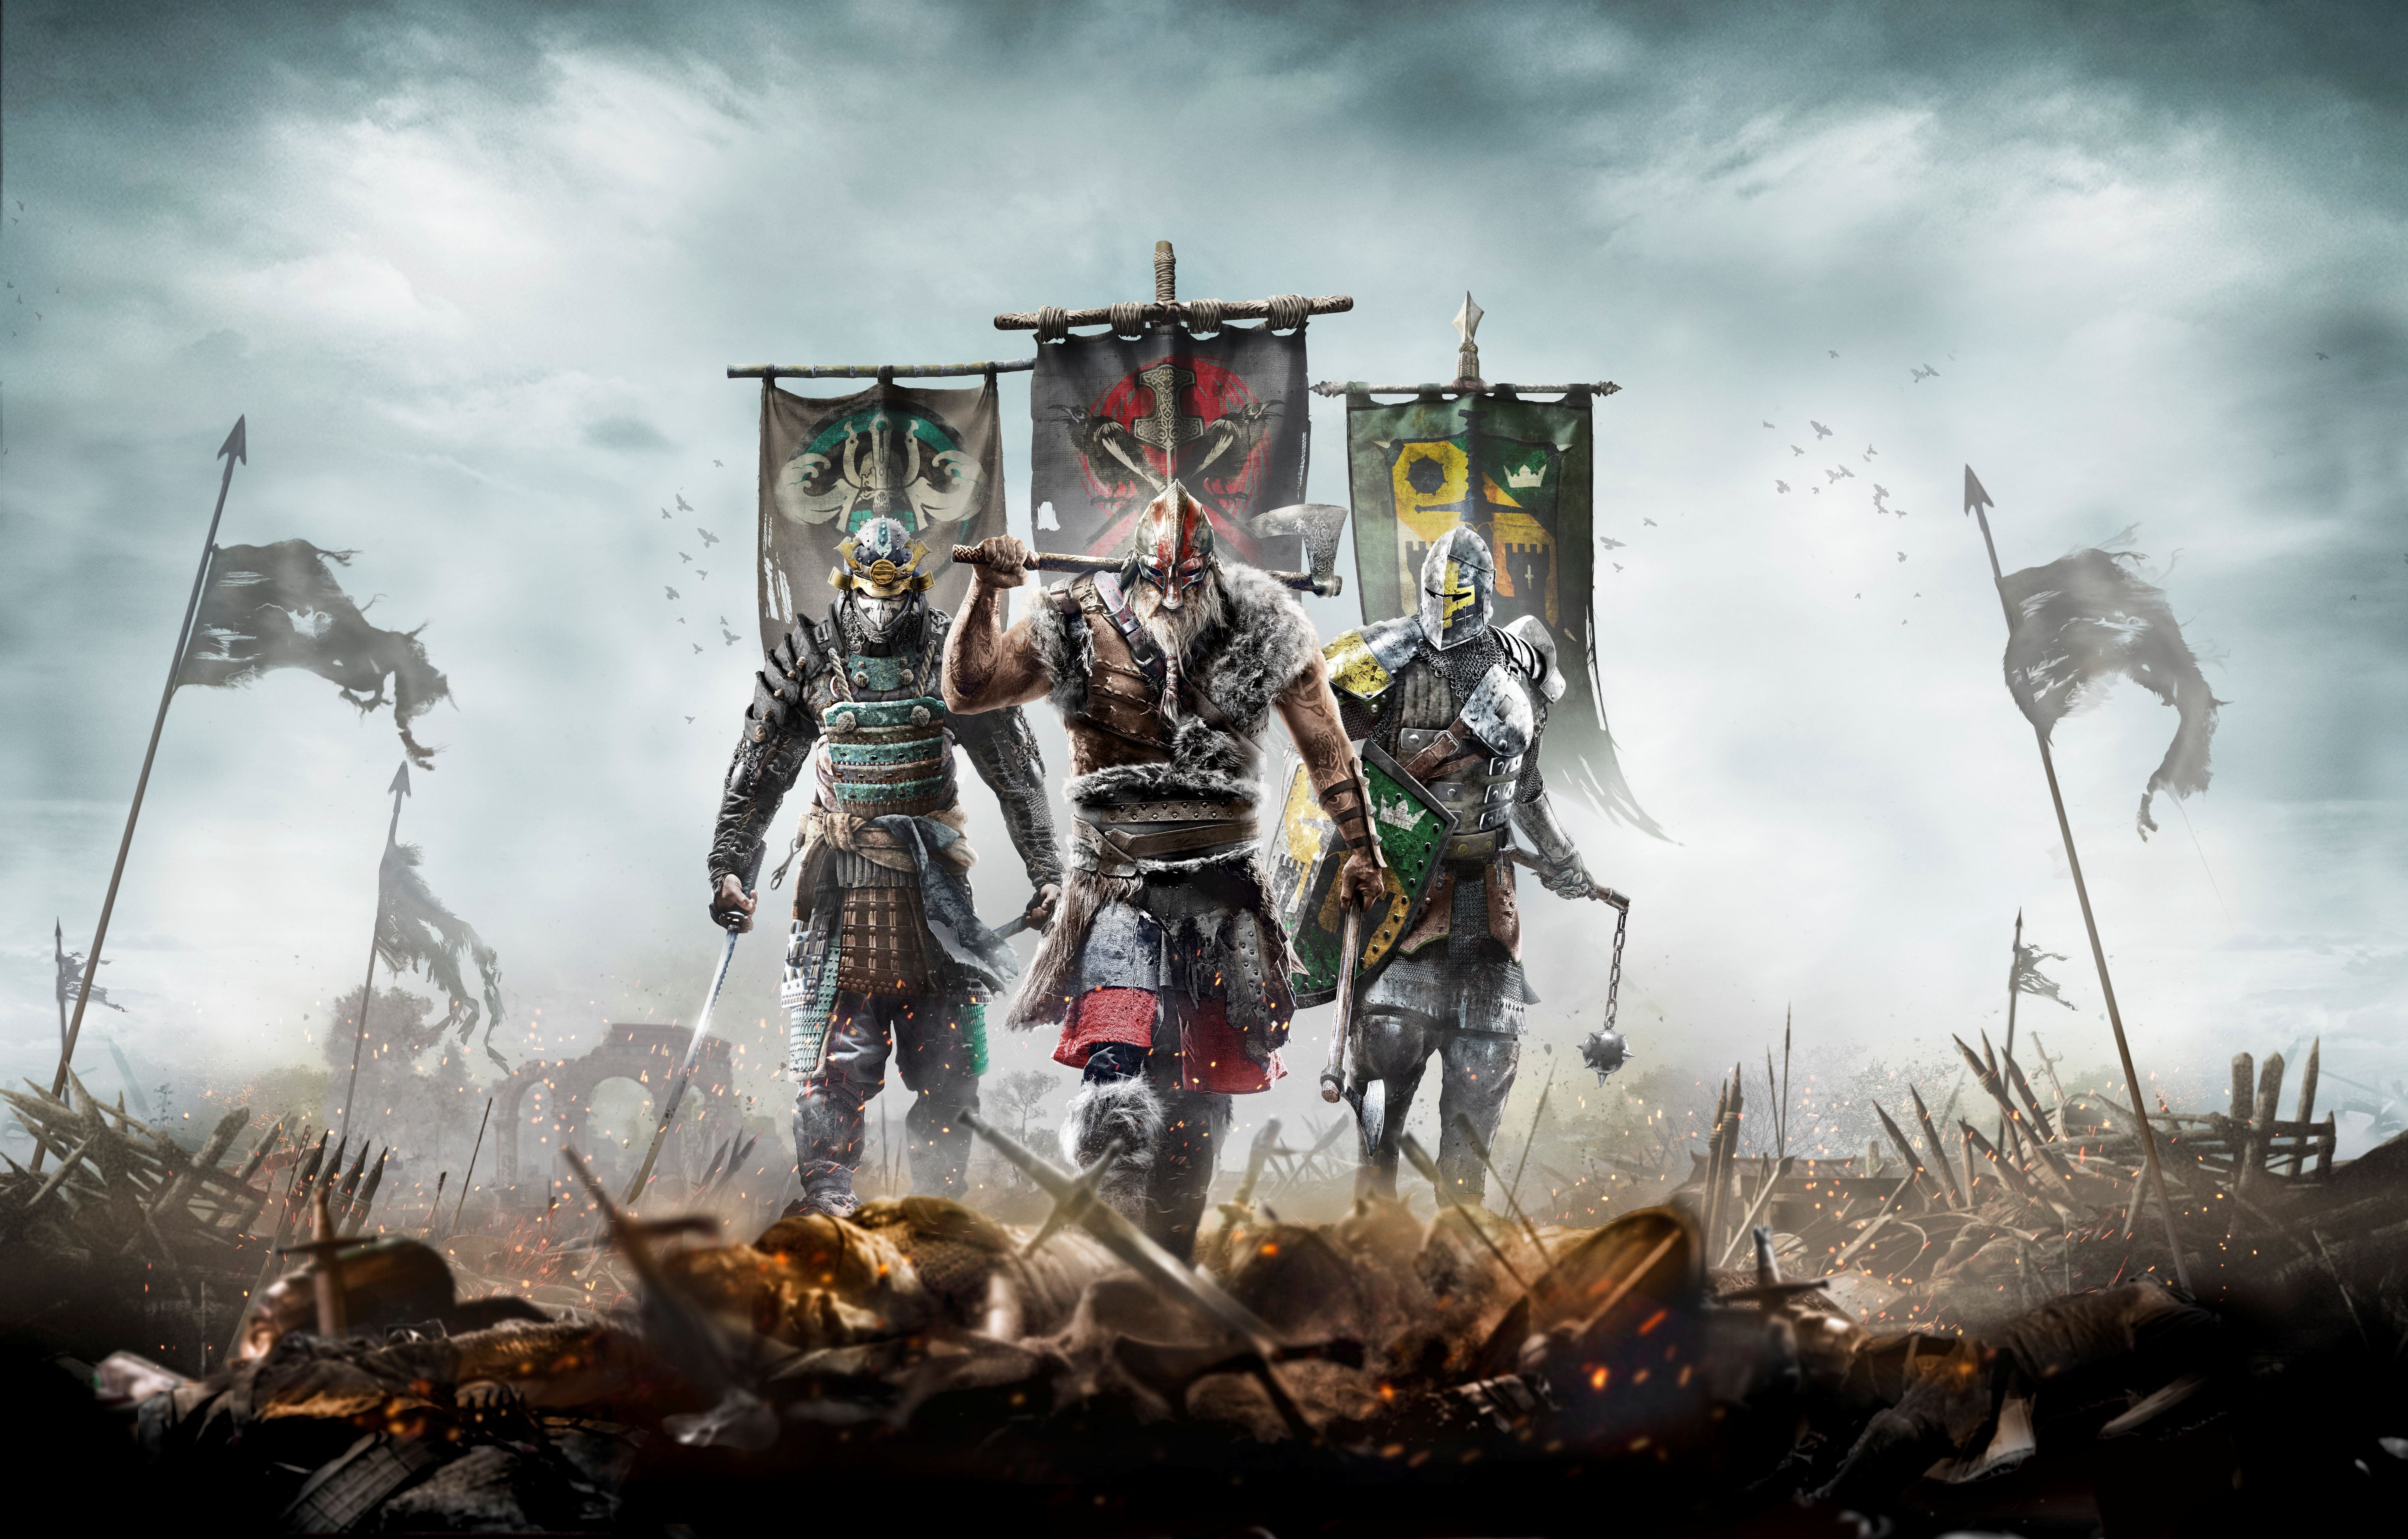 for honor 5k retina ultra hd wallpaper and background   5866x3750